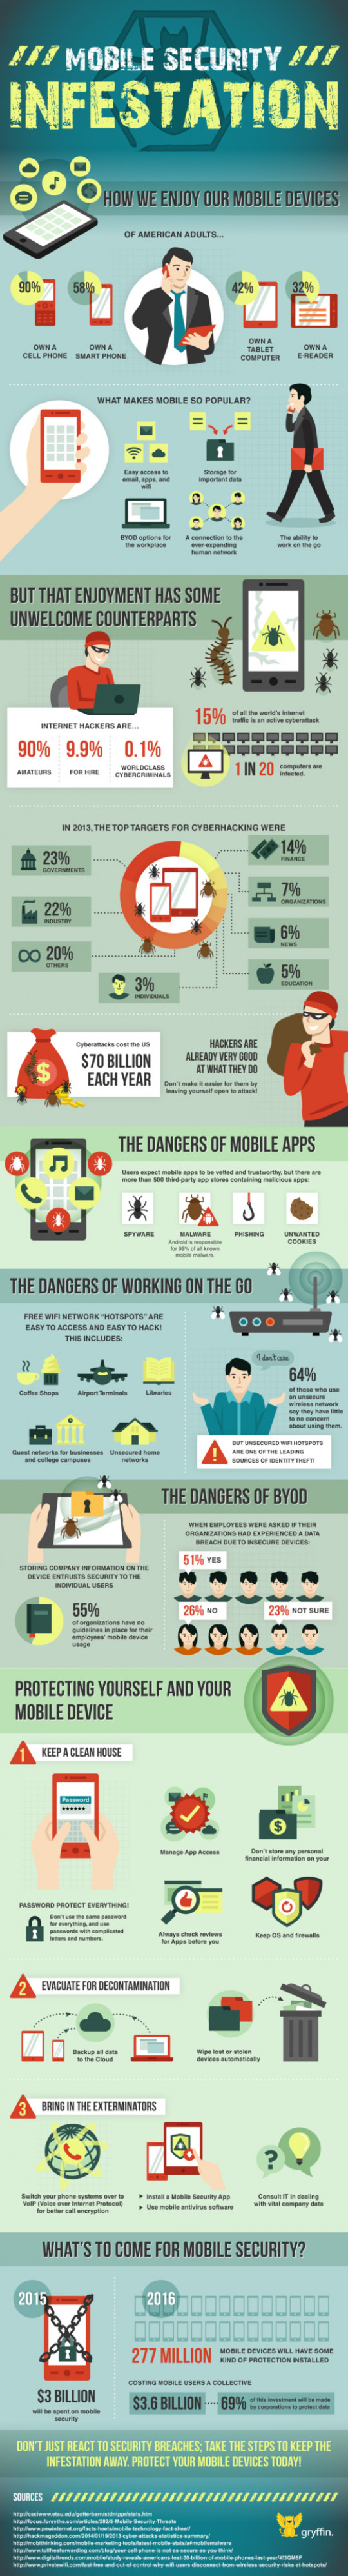 Mobile Security Infestation